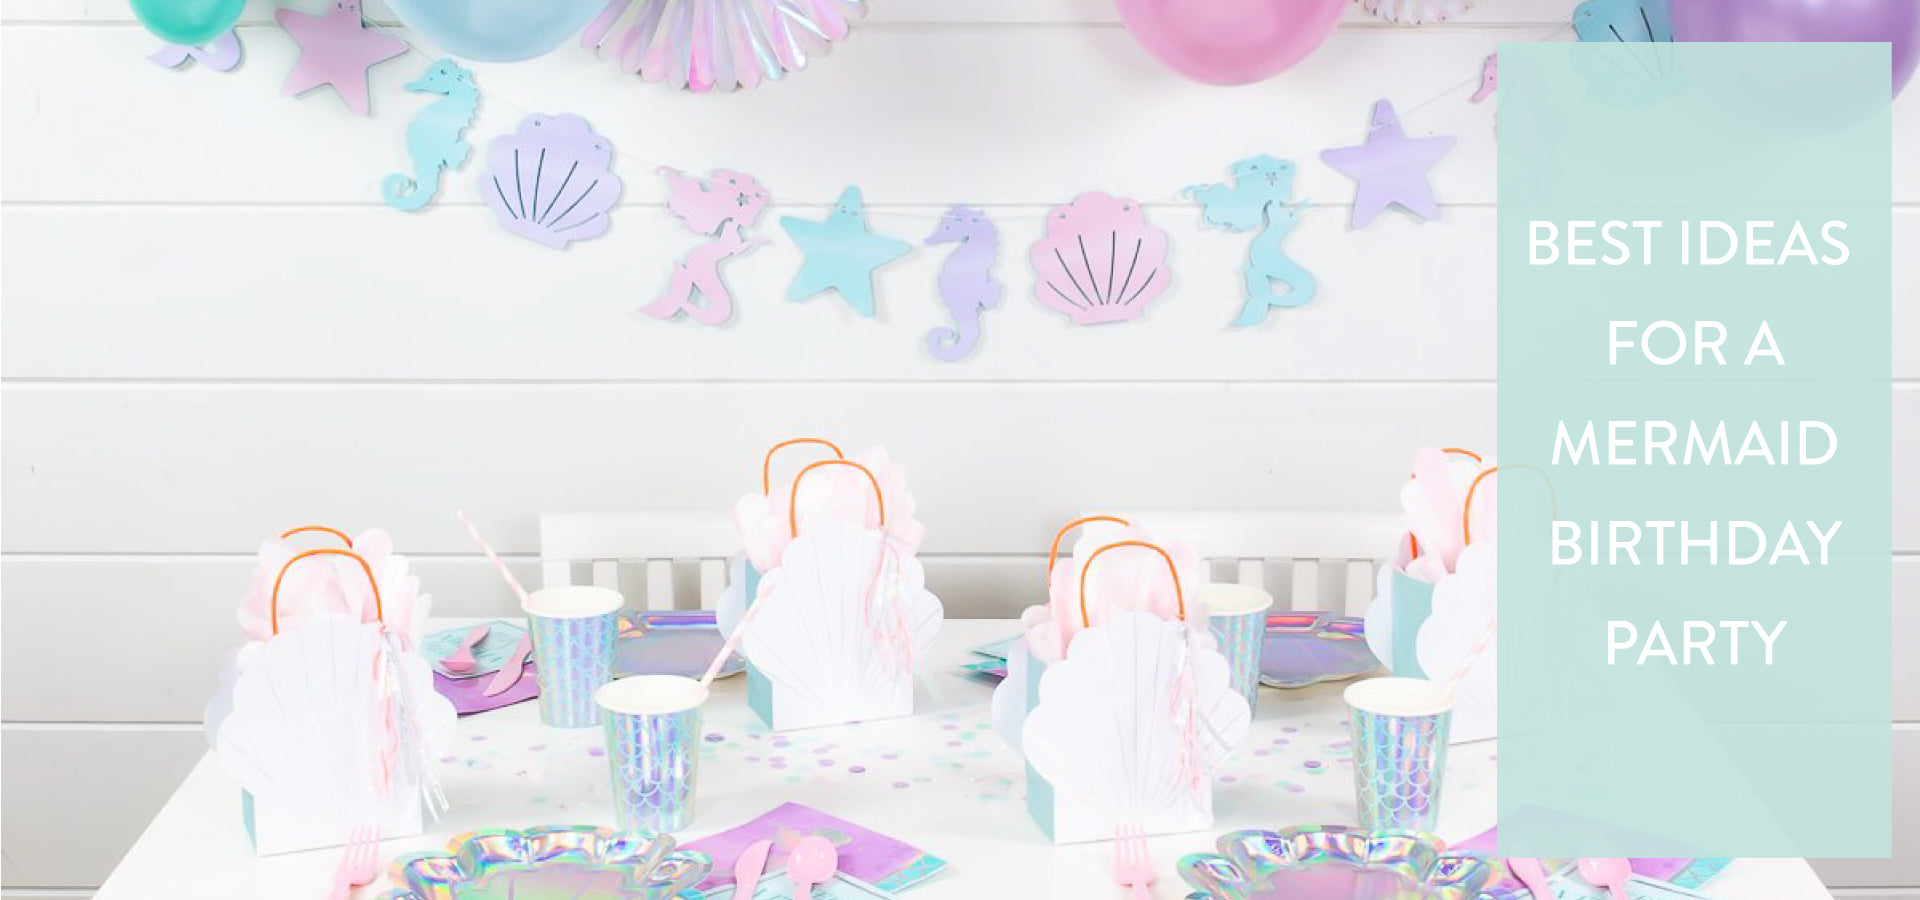 Best Ideas for a Mermaid Birthday Party | The Party Darling